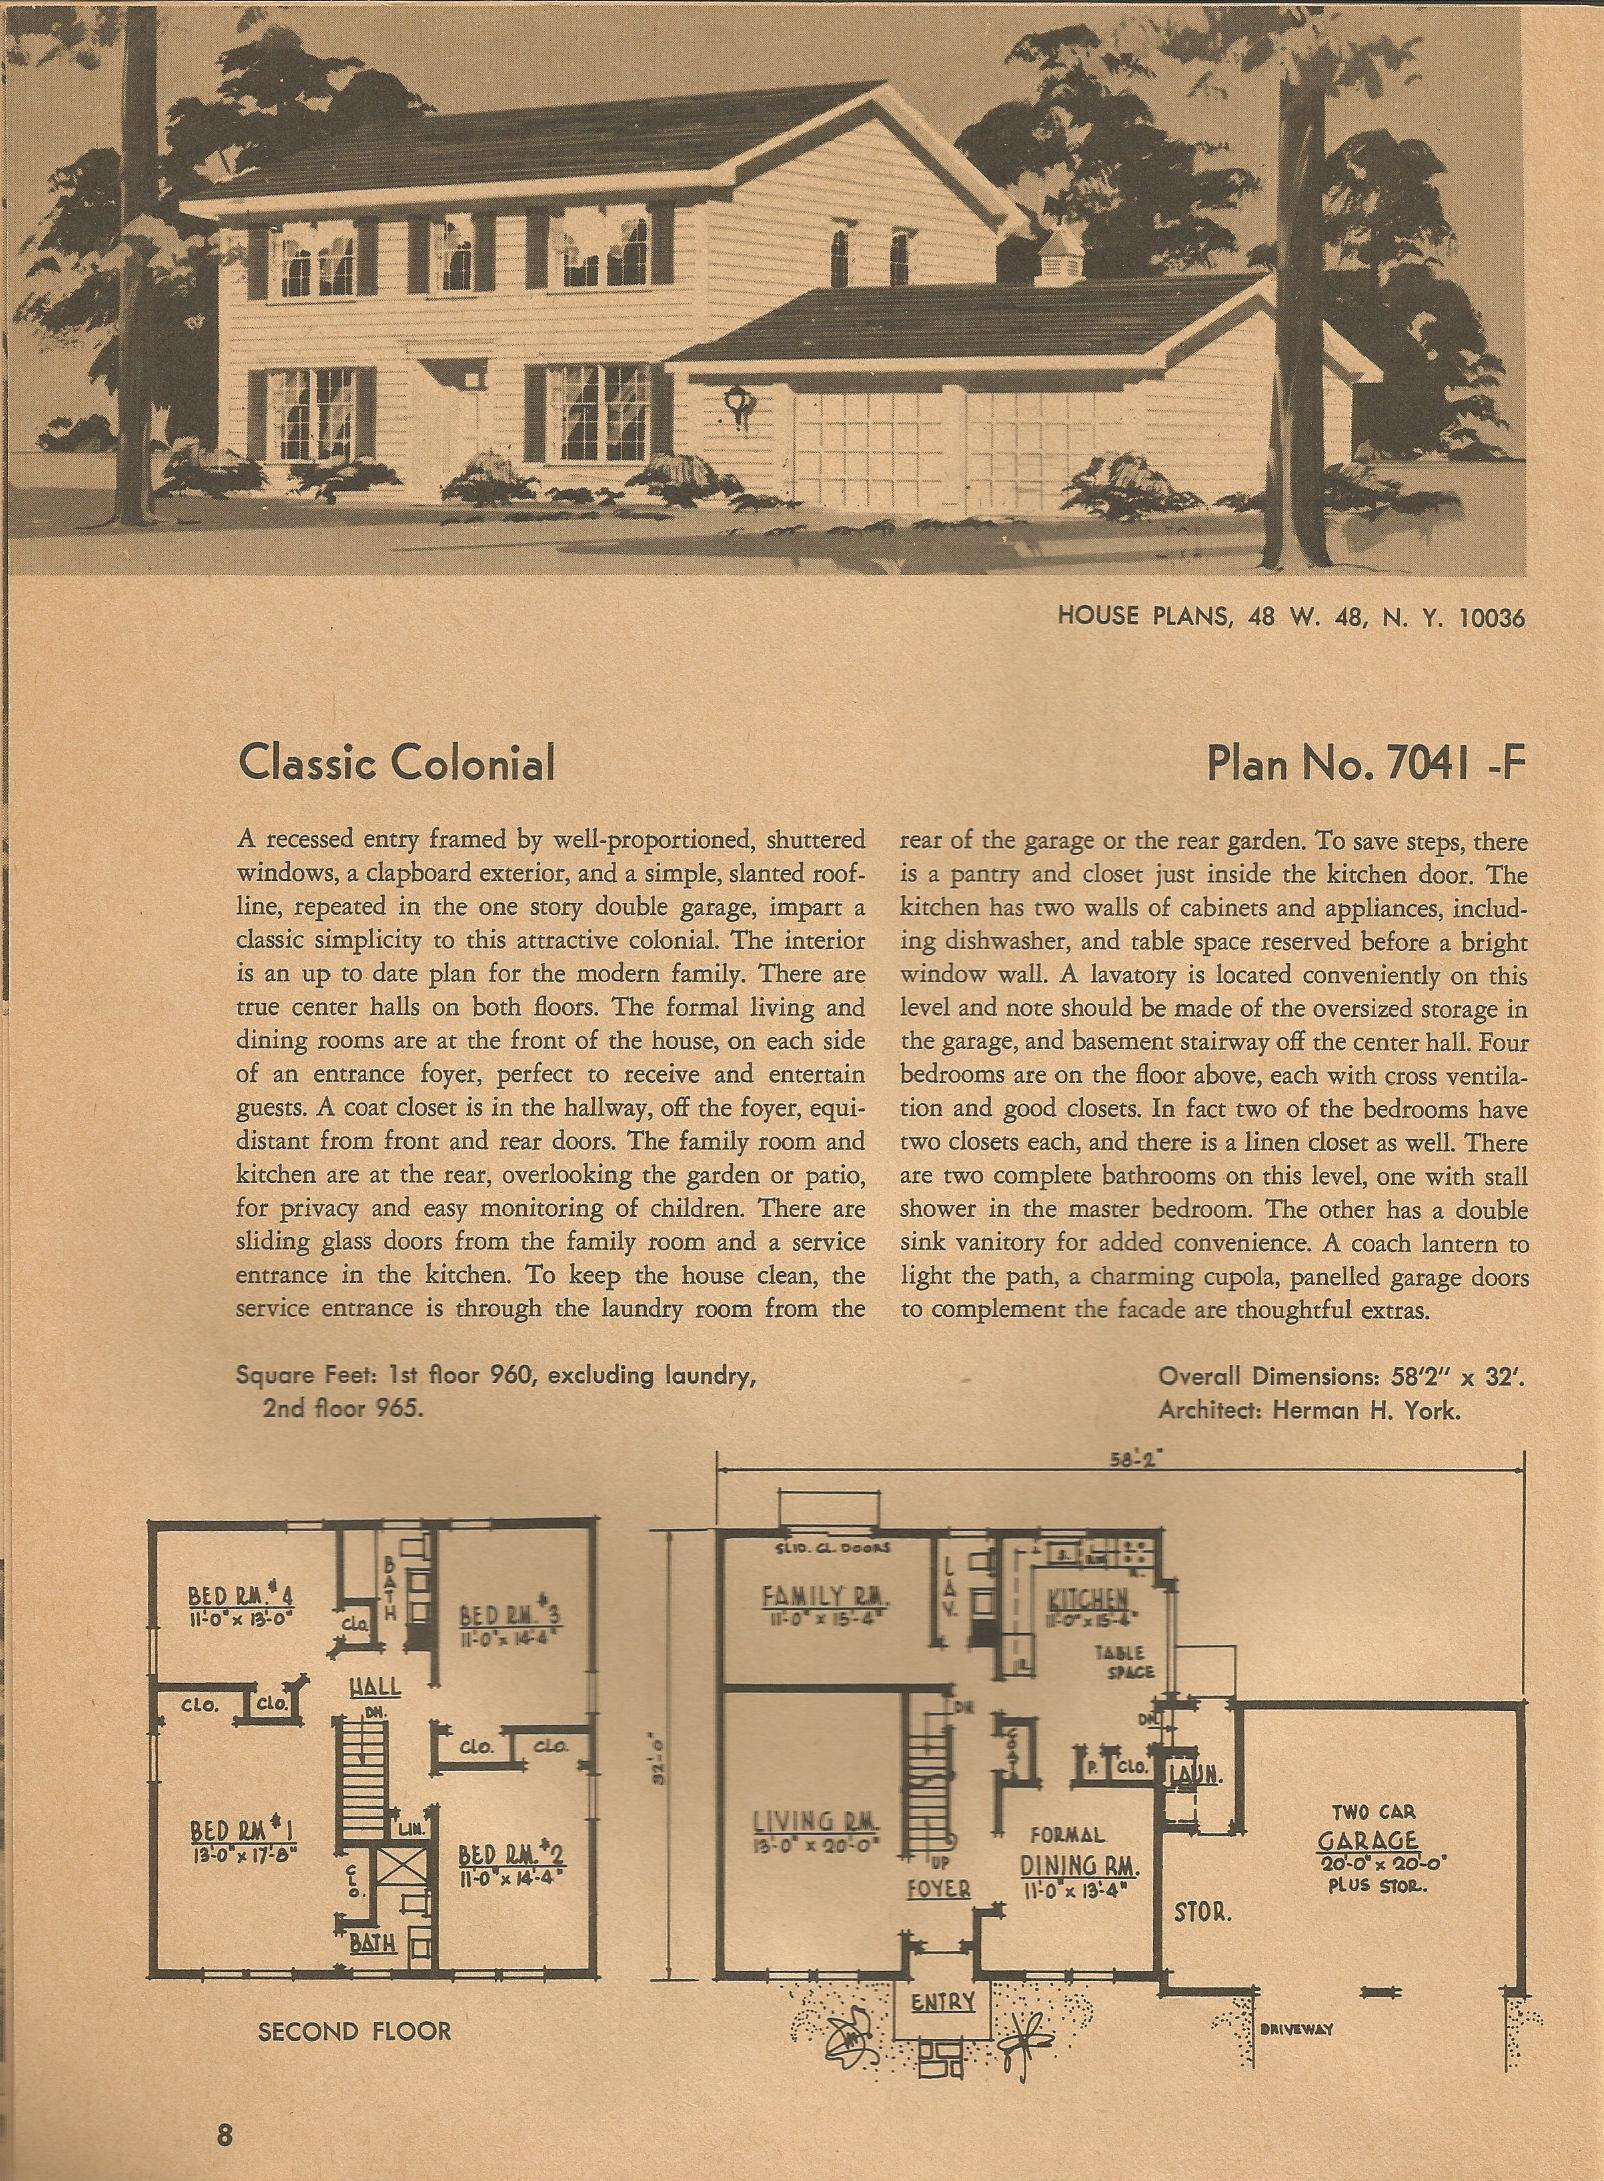 Vintage house plans 7041 antique alter ego for 1970s ranch house plans